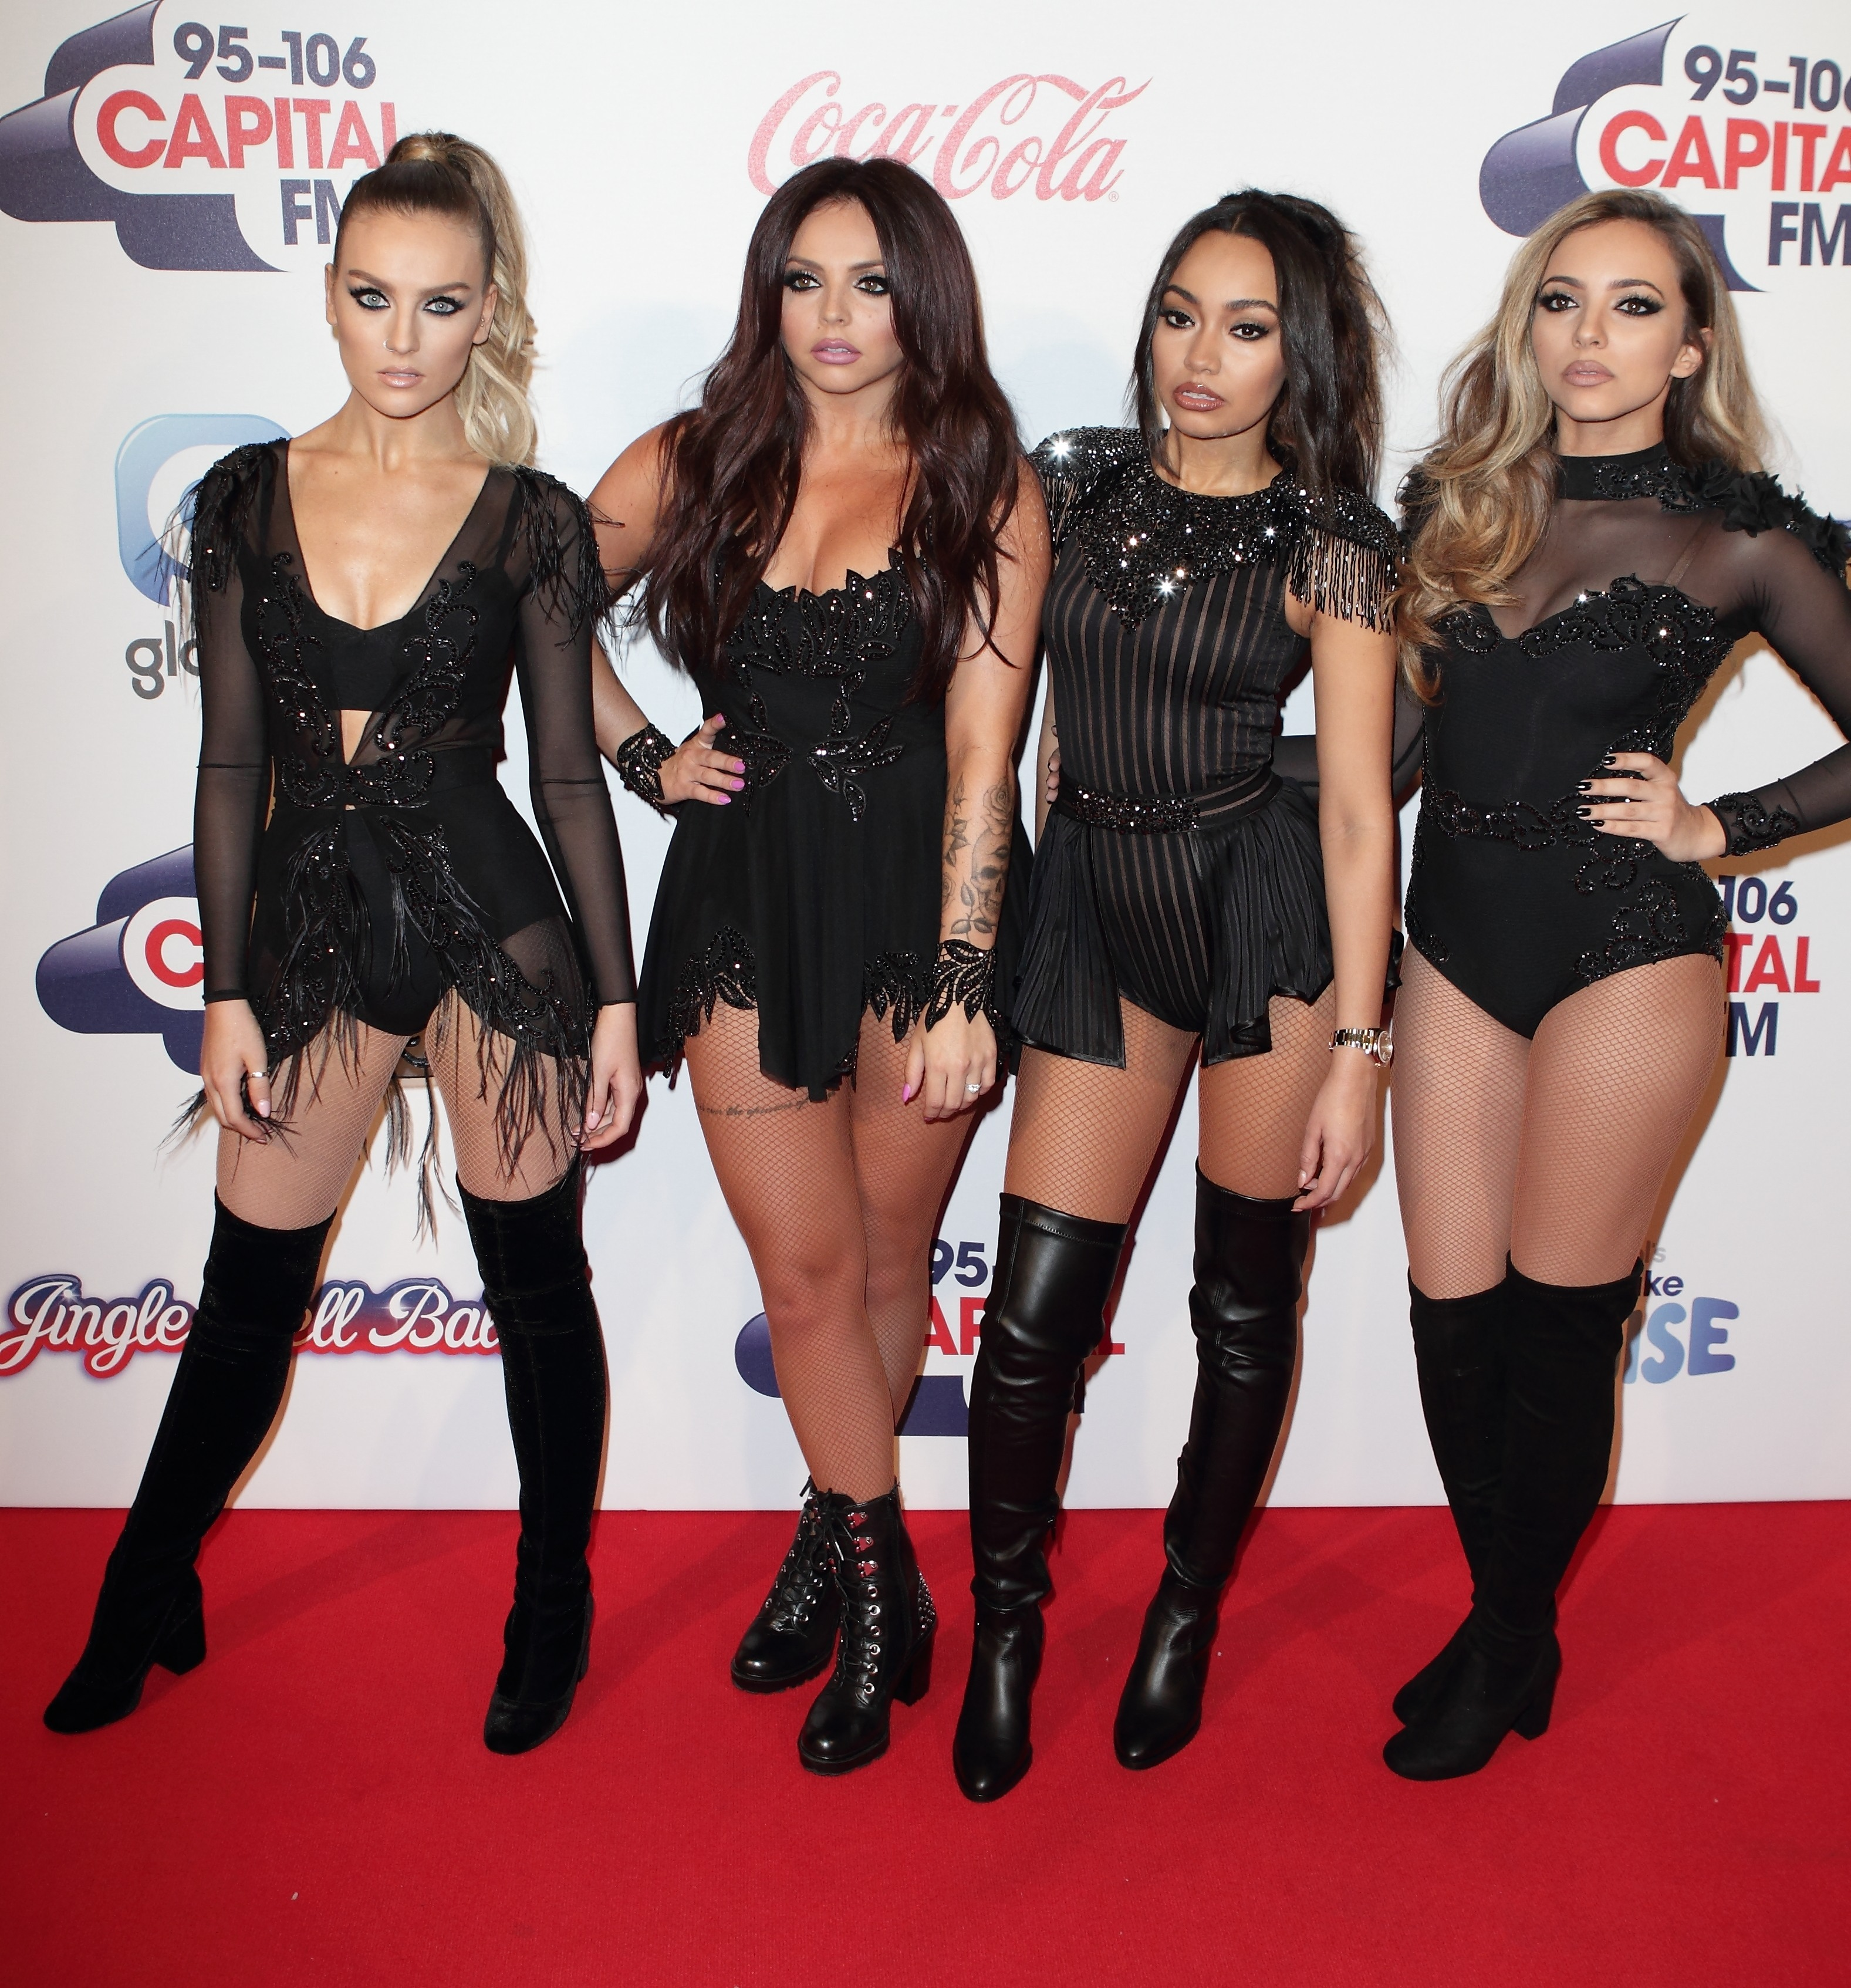 Picture Shows: Perrie Edwards, Jesy Nelson, Leigh-Anne Pinnock, Jade Thirlwall, Little Mix December 06, 2015 Celebrities arrive on the red carpet to attend the Capital FM Jingle Bell Ball, held at the O2 Arena in Greenwich, London. Non Exclusive WORLDWIDE RIGHTS Pictures by : FameFlynet UK © 2015 Tel : +44 (0)20 3551 5049 Email : info@fameflynet.uk.com